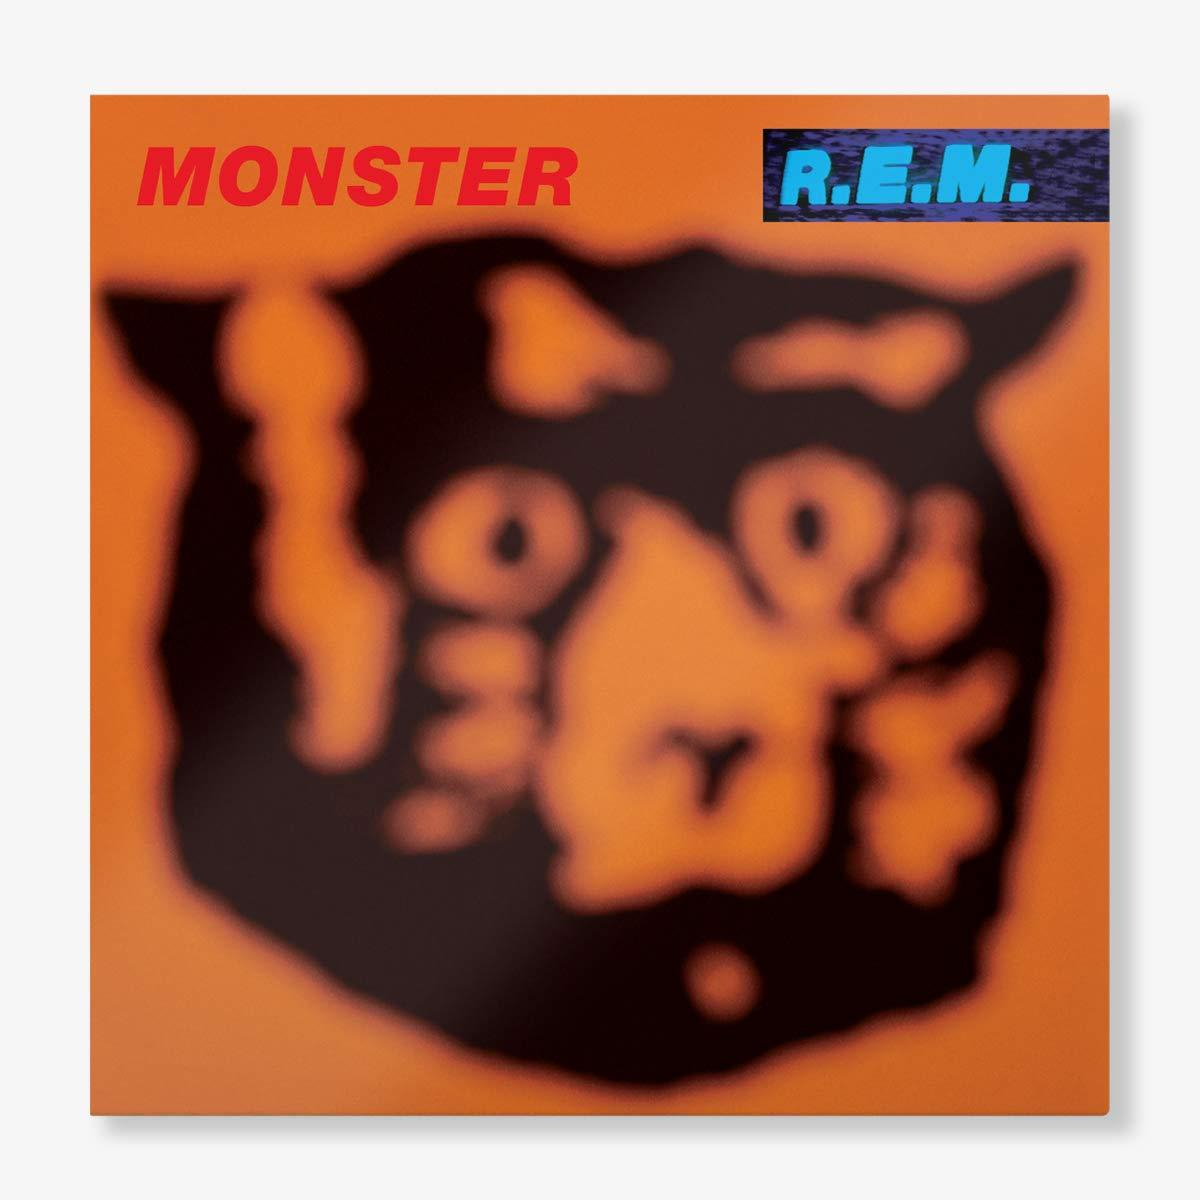 0888072111486 Craft Recordings  R.E.M. Monster - 25th Anniversary Edition (LP)